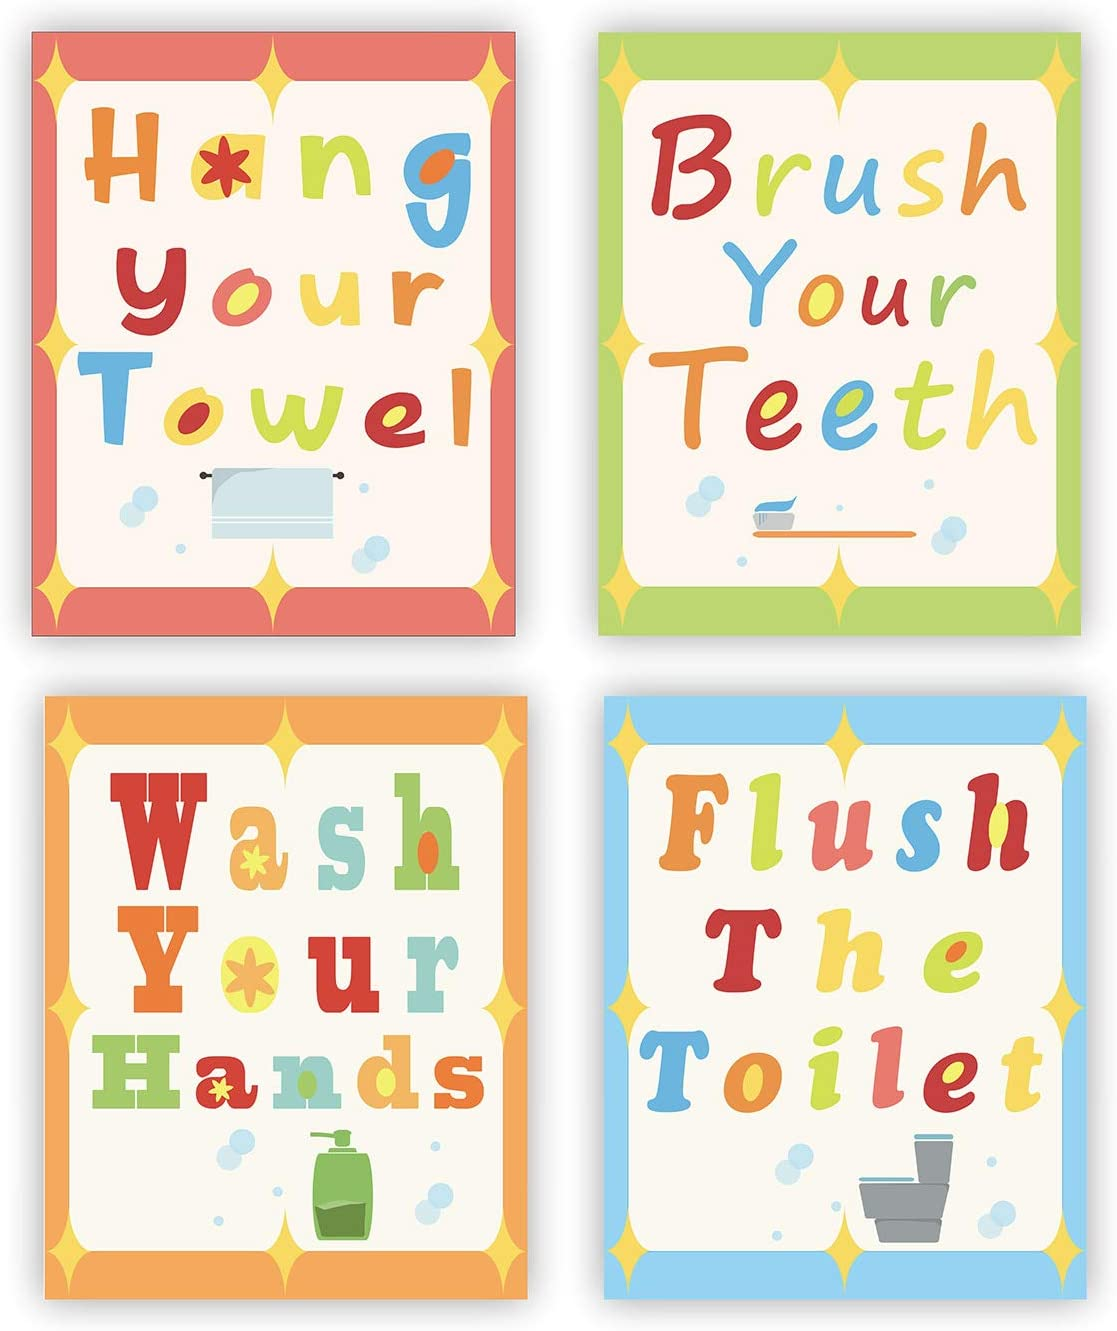 Funny Bathroom Wall Art Decor Posters Set of 4 Wash Brush Floss Flush Toilet Rules Sign Perfect for Baby Washroom Decoration (UNFRAMED)